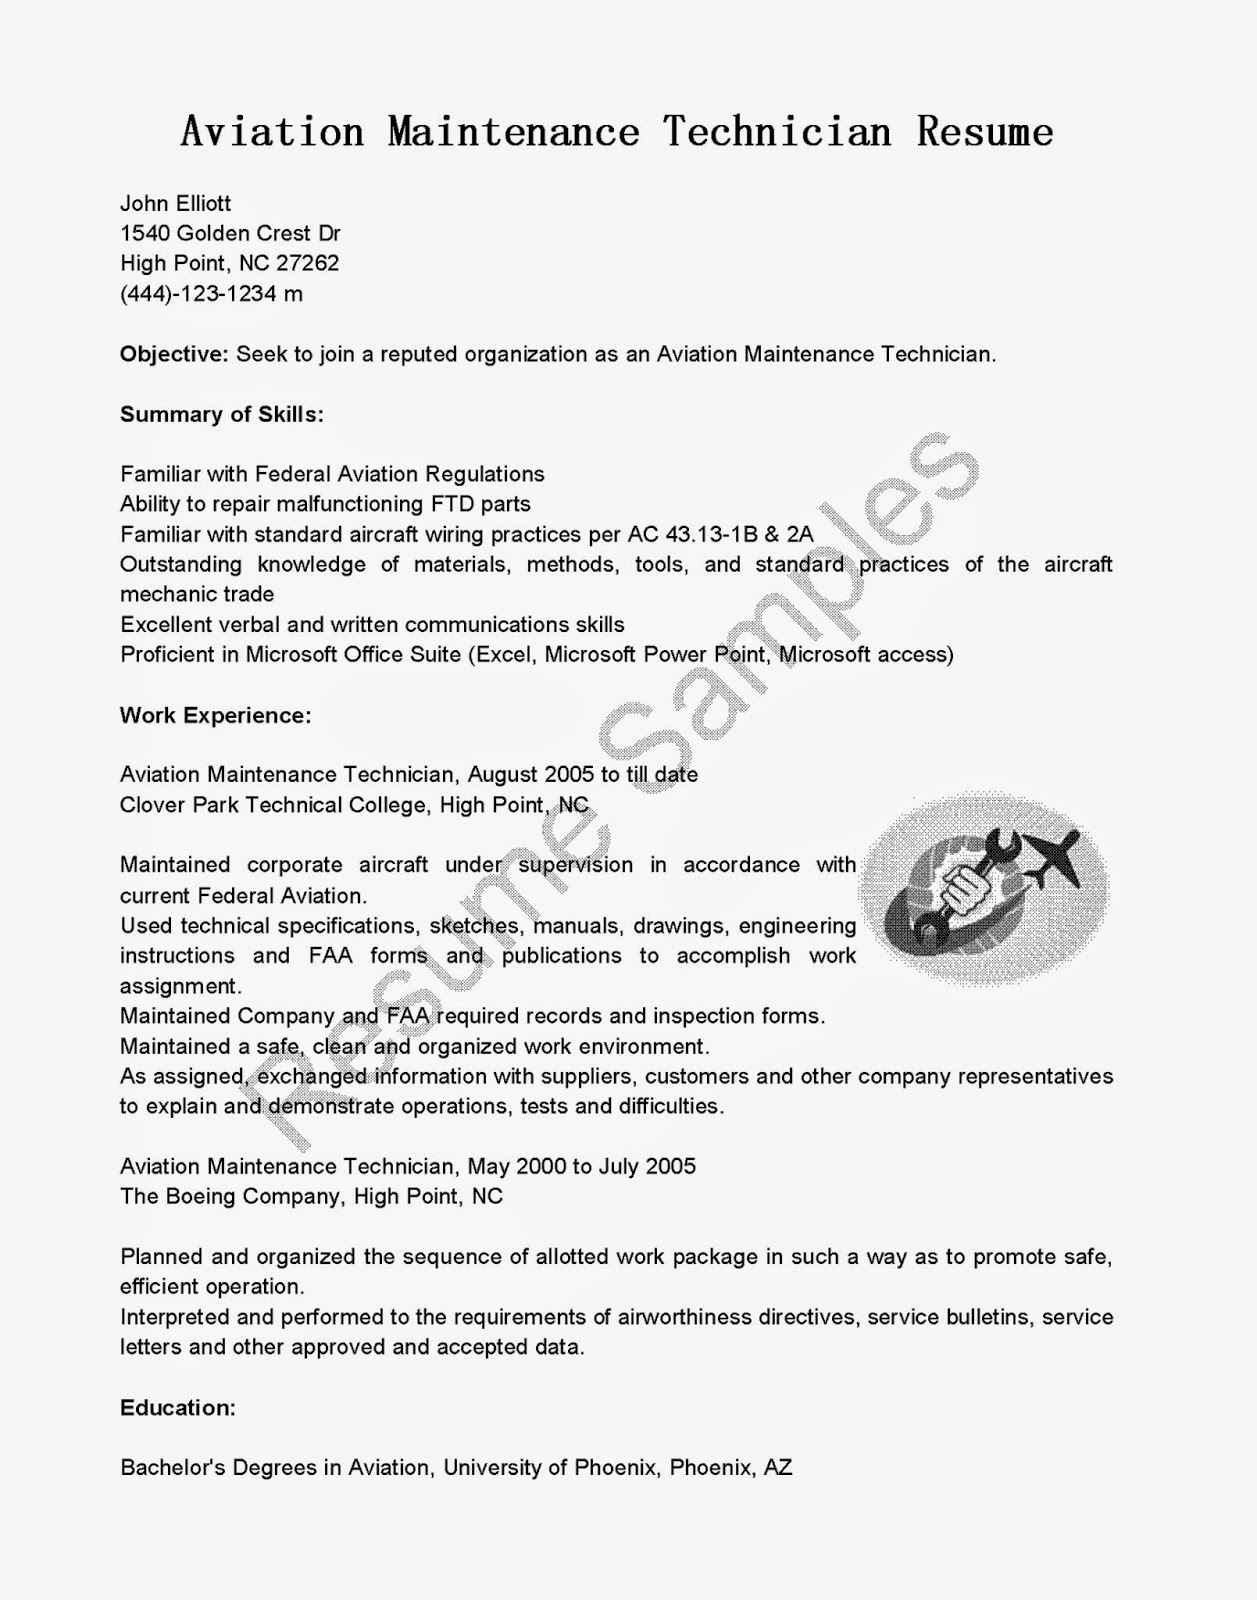 instrument technician resume blithedale romance thesis statements english essay lesson plans mechanic resume example